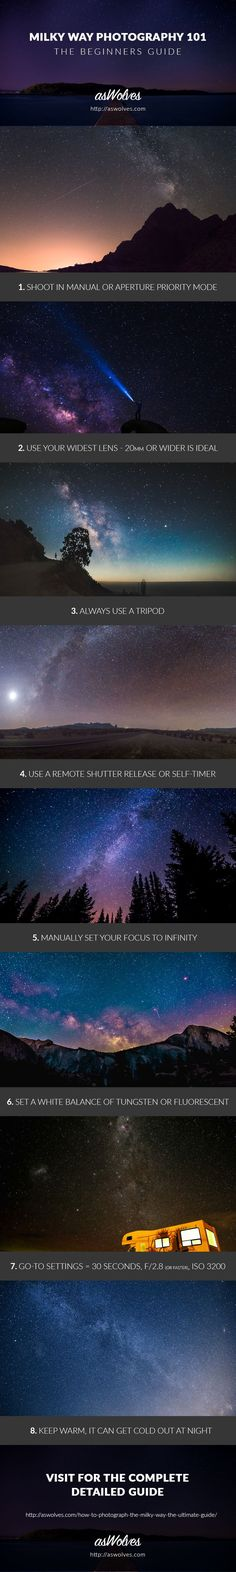 Visit For The Complete Guide - aperturely.com/how-to-photograph-the-milky-way-the-ultimate-guide/